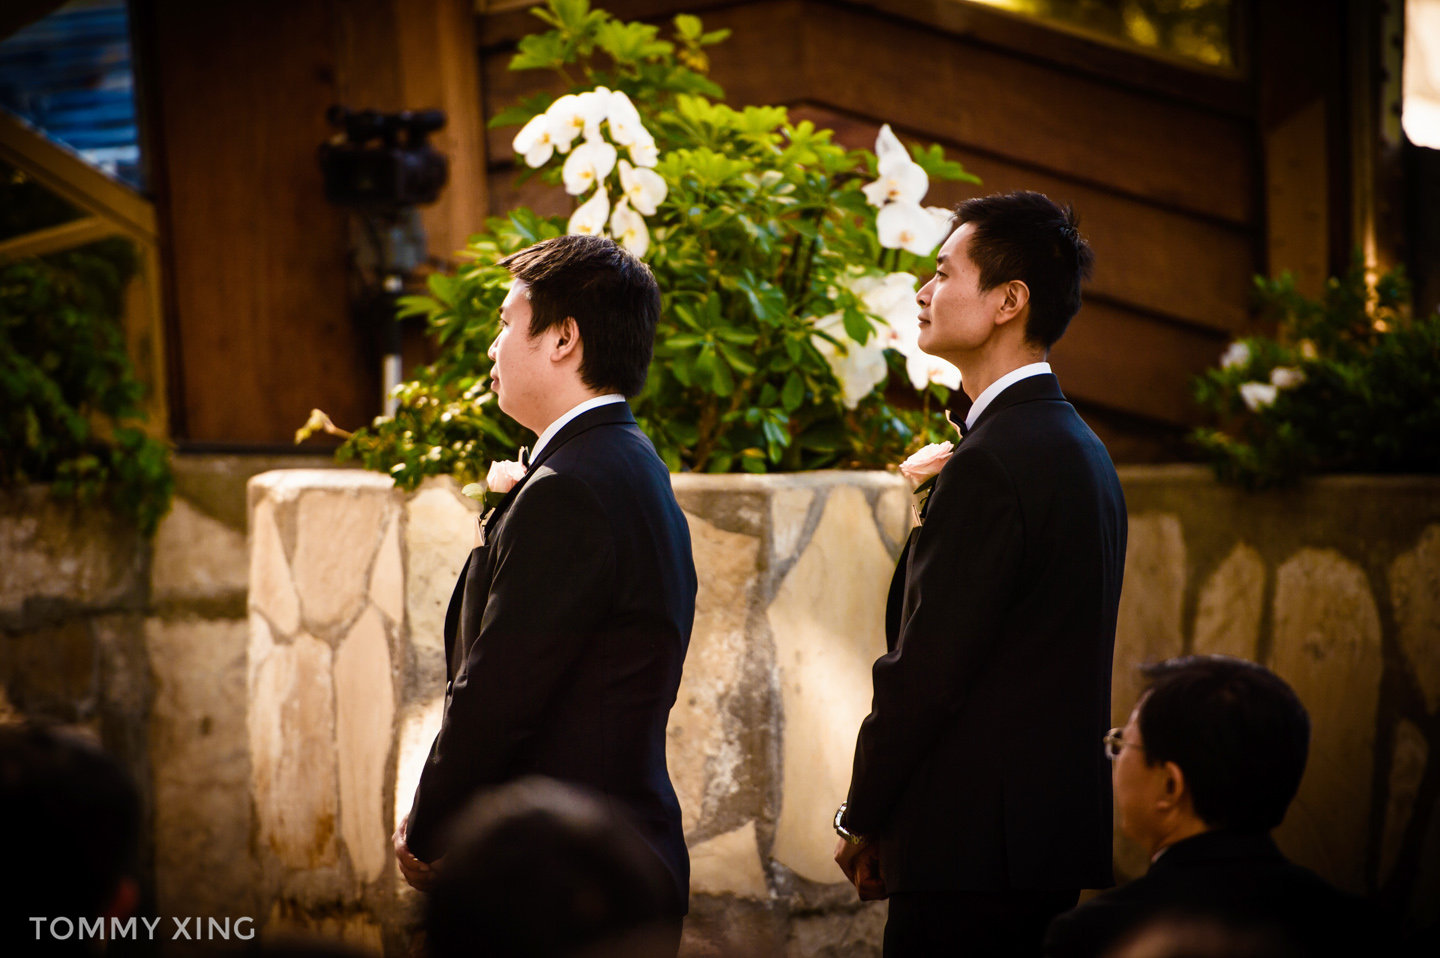 Los Angeles Wedding Photographer 洛杉矶婚礼婚纱摄影师 Tommy Xing-135.JPG